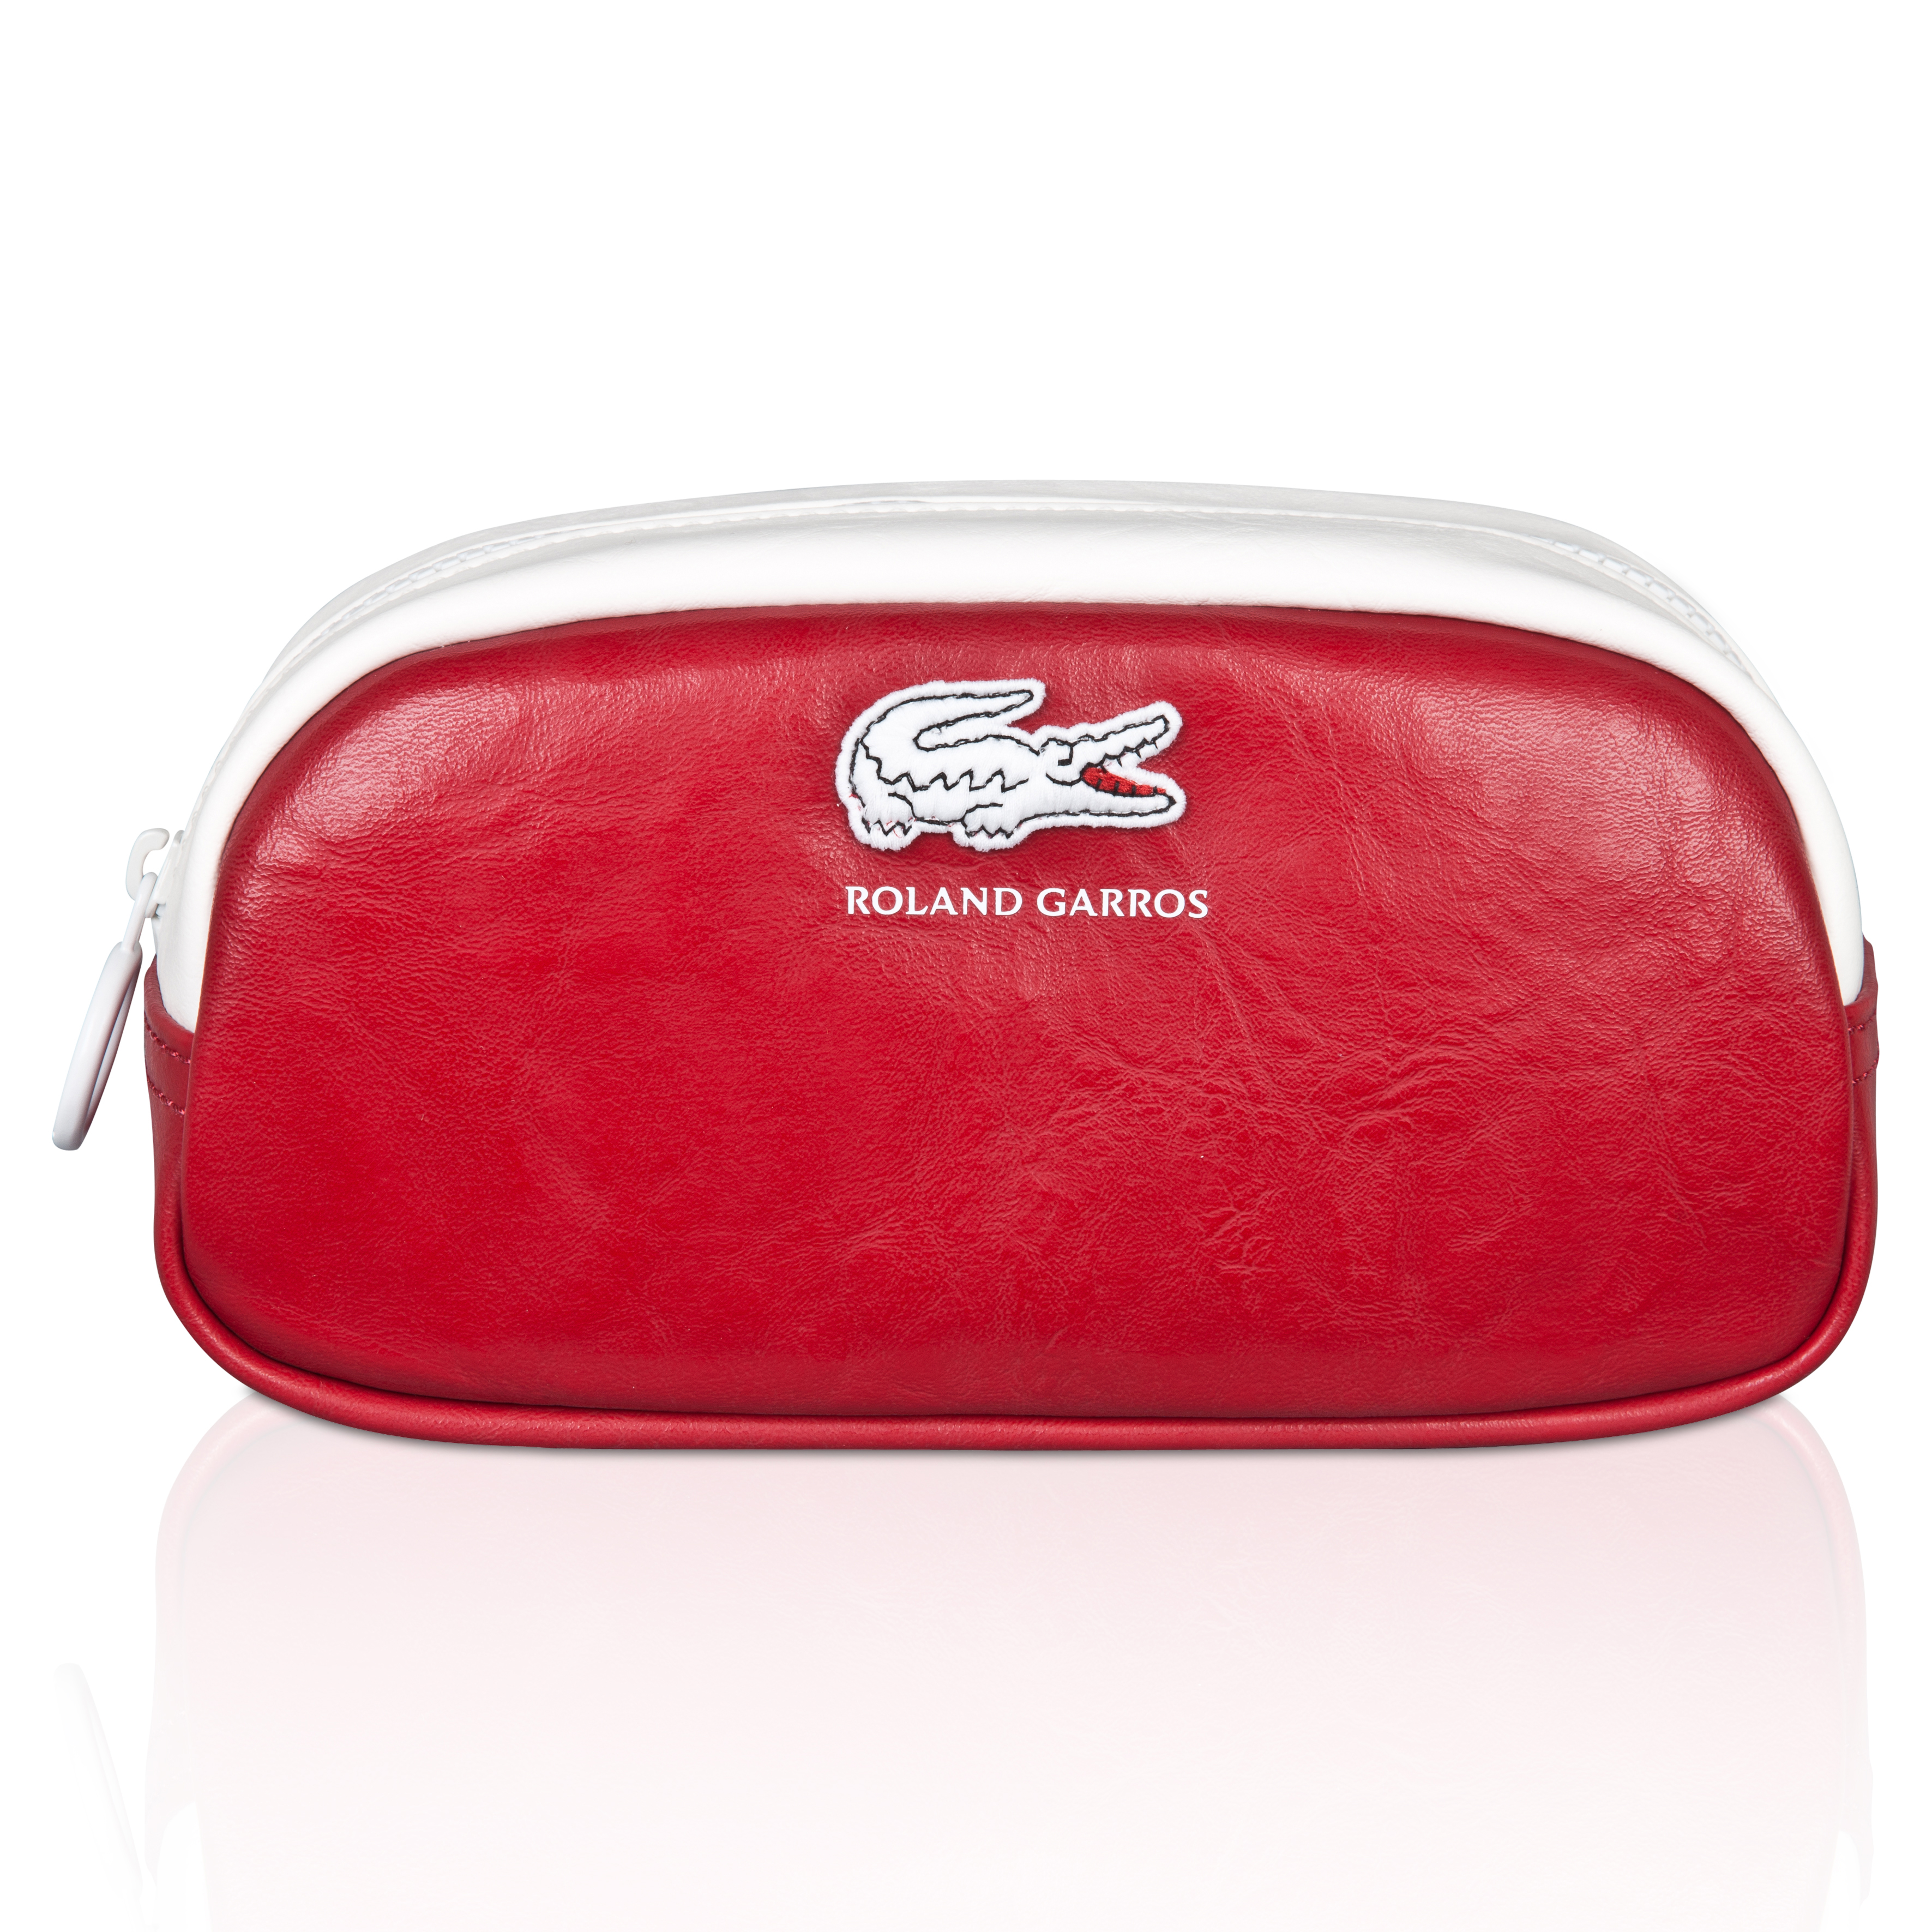 Roland-Garros Toilet Bag Red